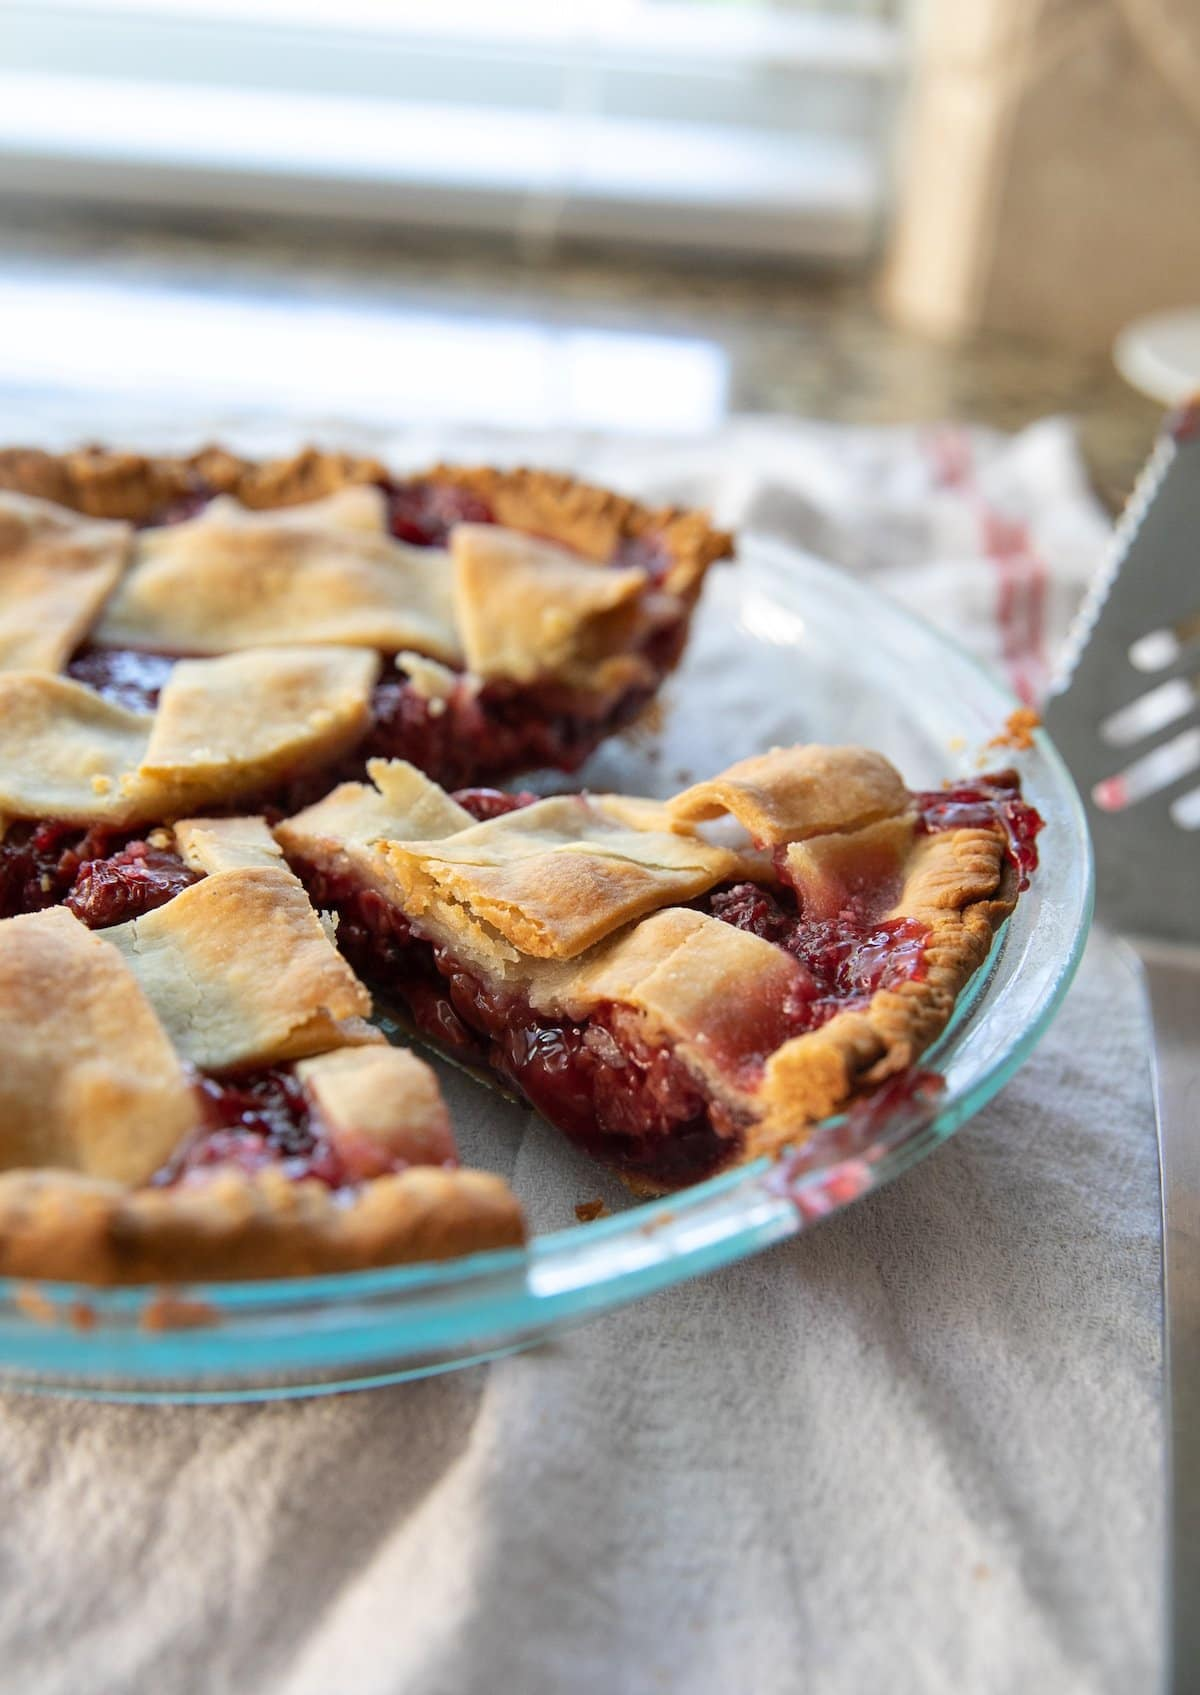 Sour cherry pie with slices taken from the pan